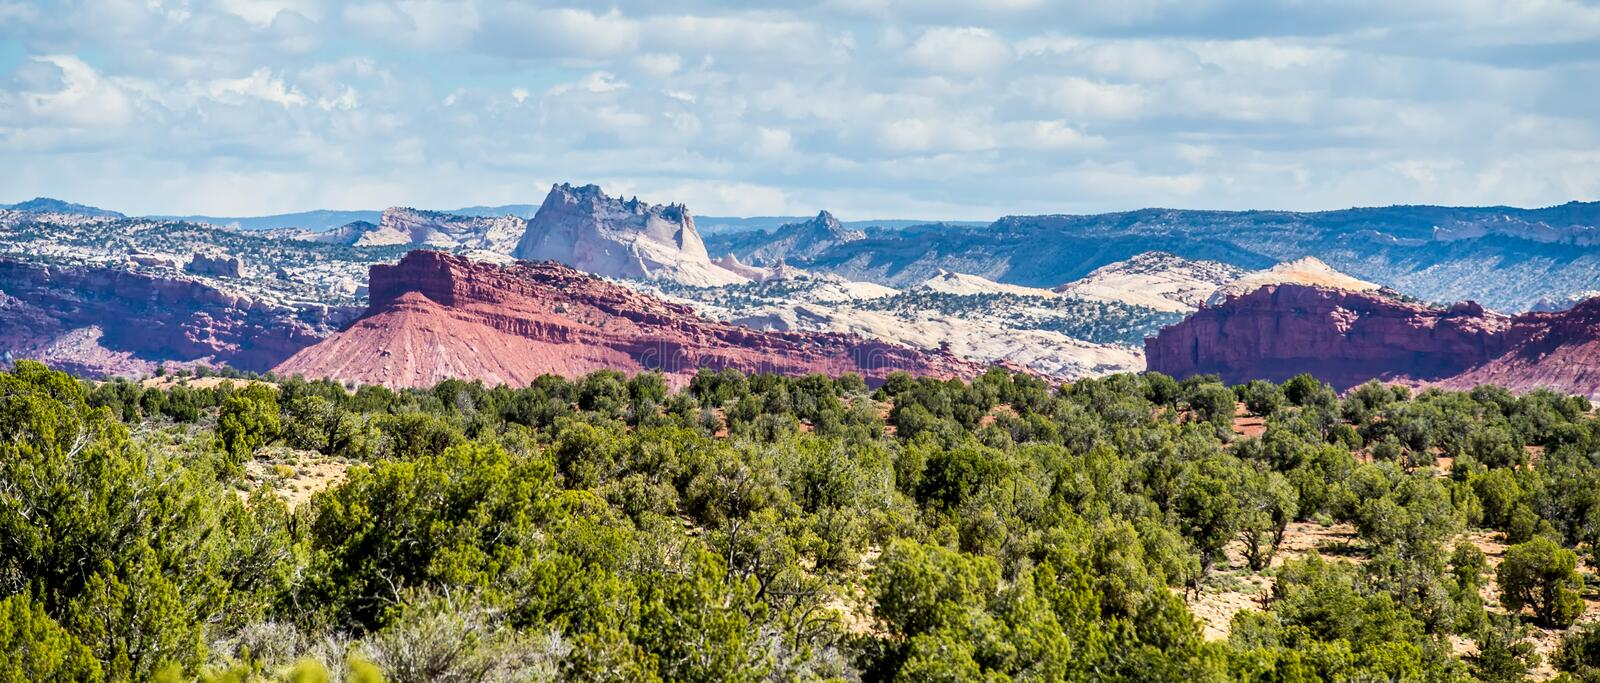 Desert landscapes utah with sandy mountains royalty free stock photography